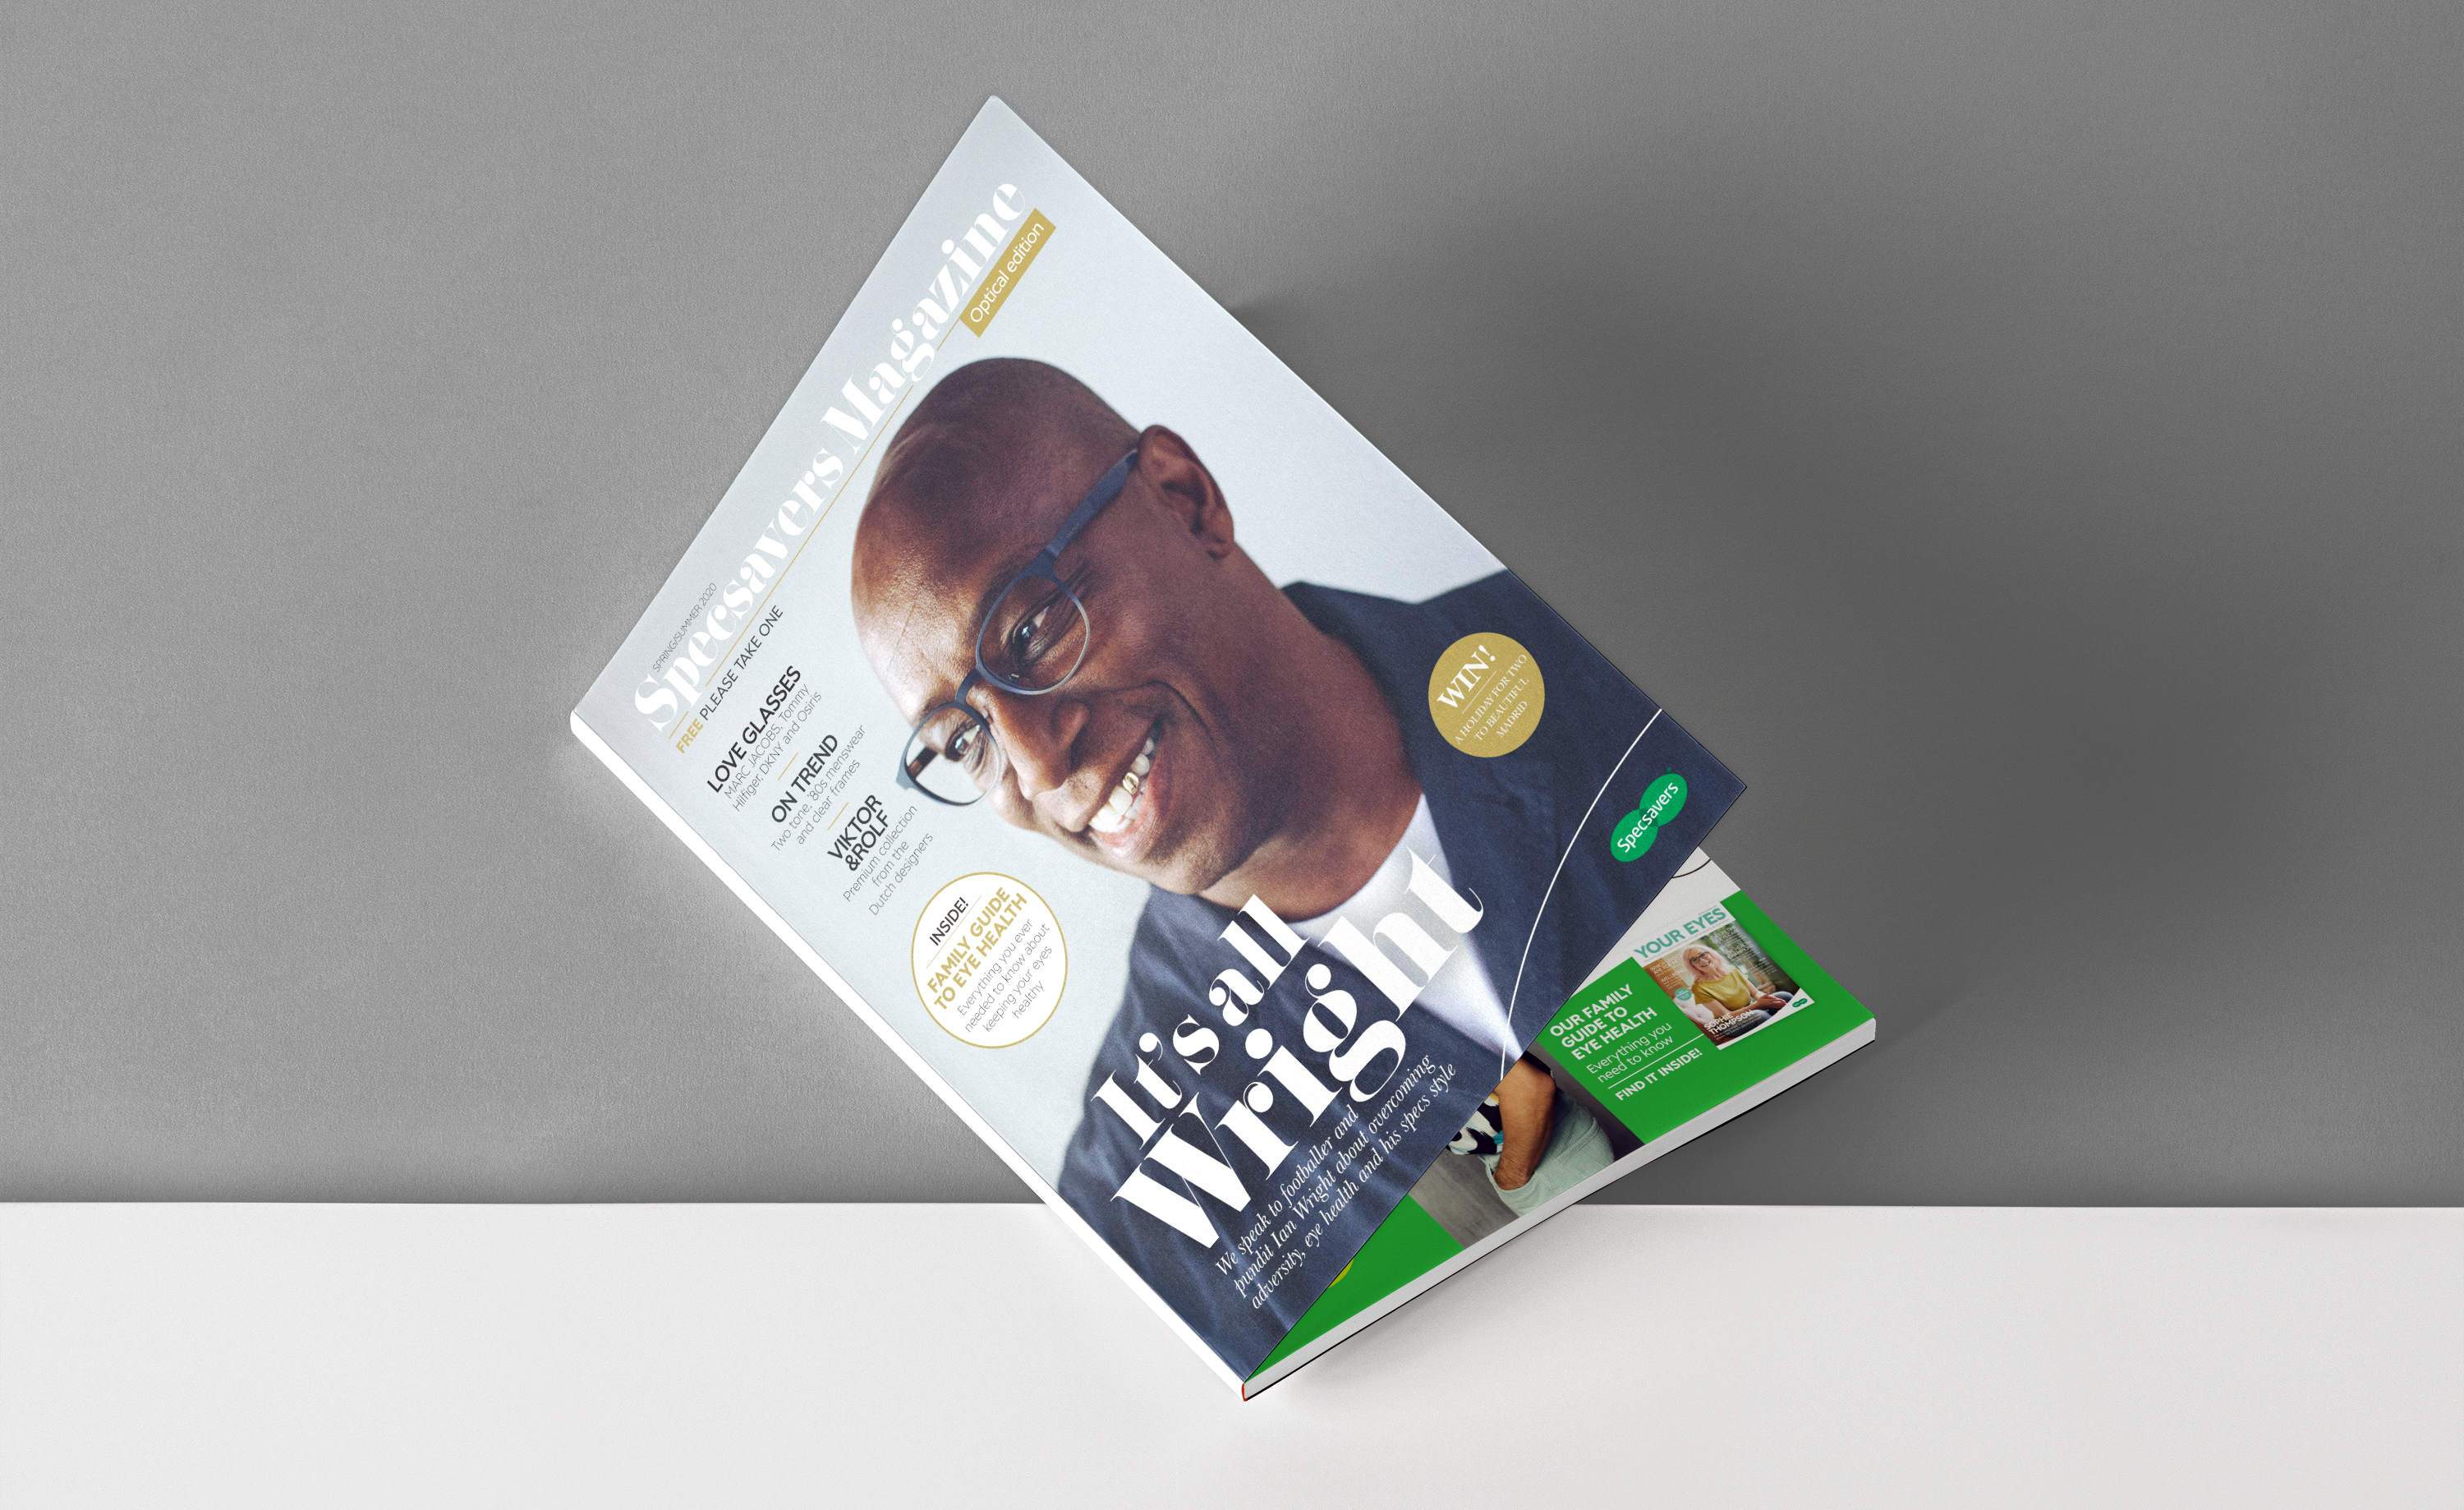 Specsavers Magazine - Front cover featuring Ian Wright